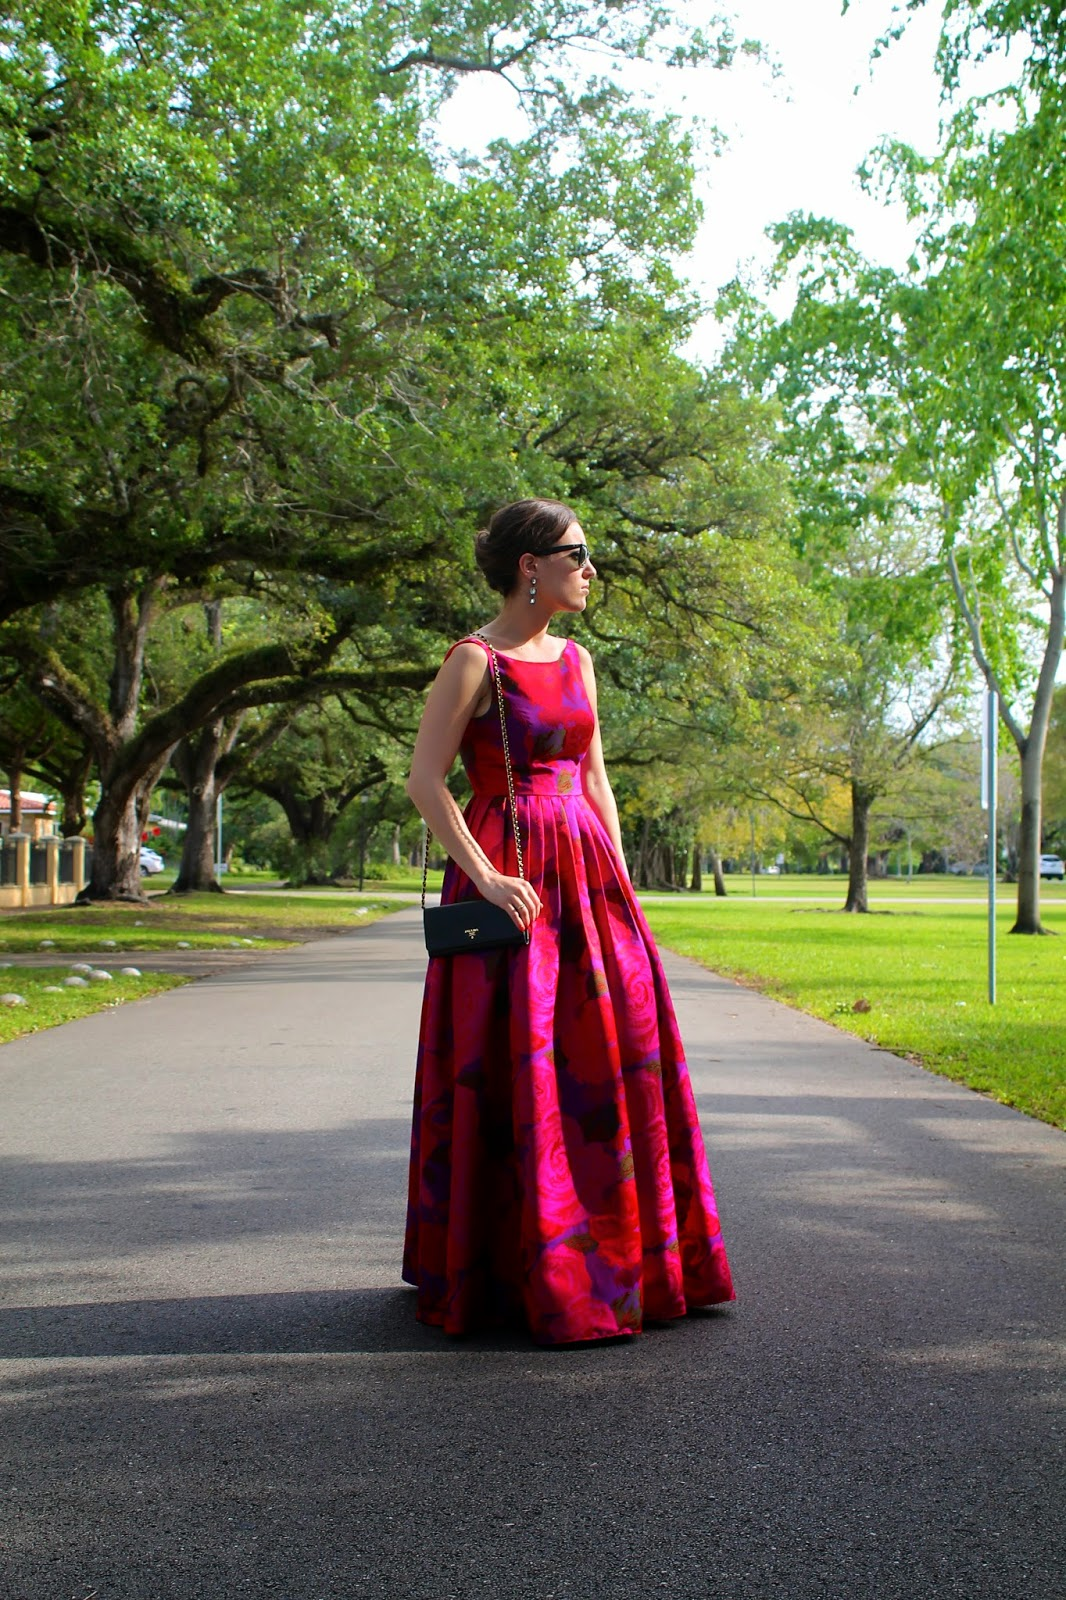 Adrianna Papell, White House Black Market, Anthropologie, Ray-Ban, Prada, gowns, black tie, formal wear, ball gowns, evening wear, outfit ideas, fashion blog, style blog, fashion blogger